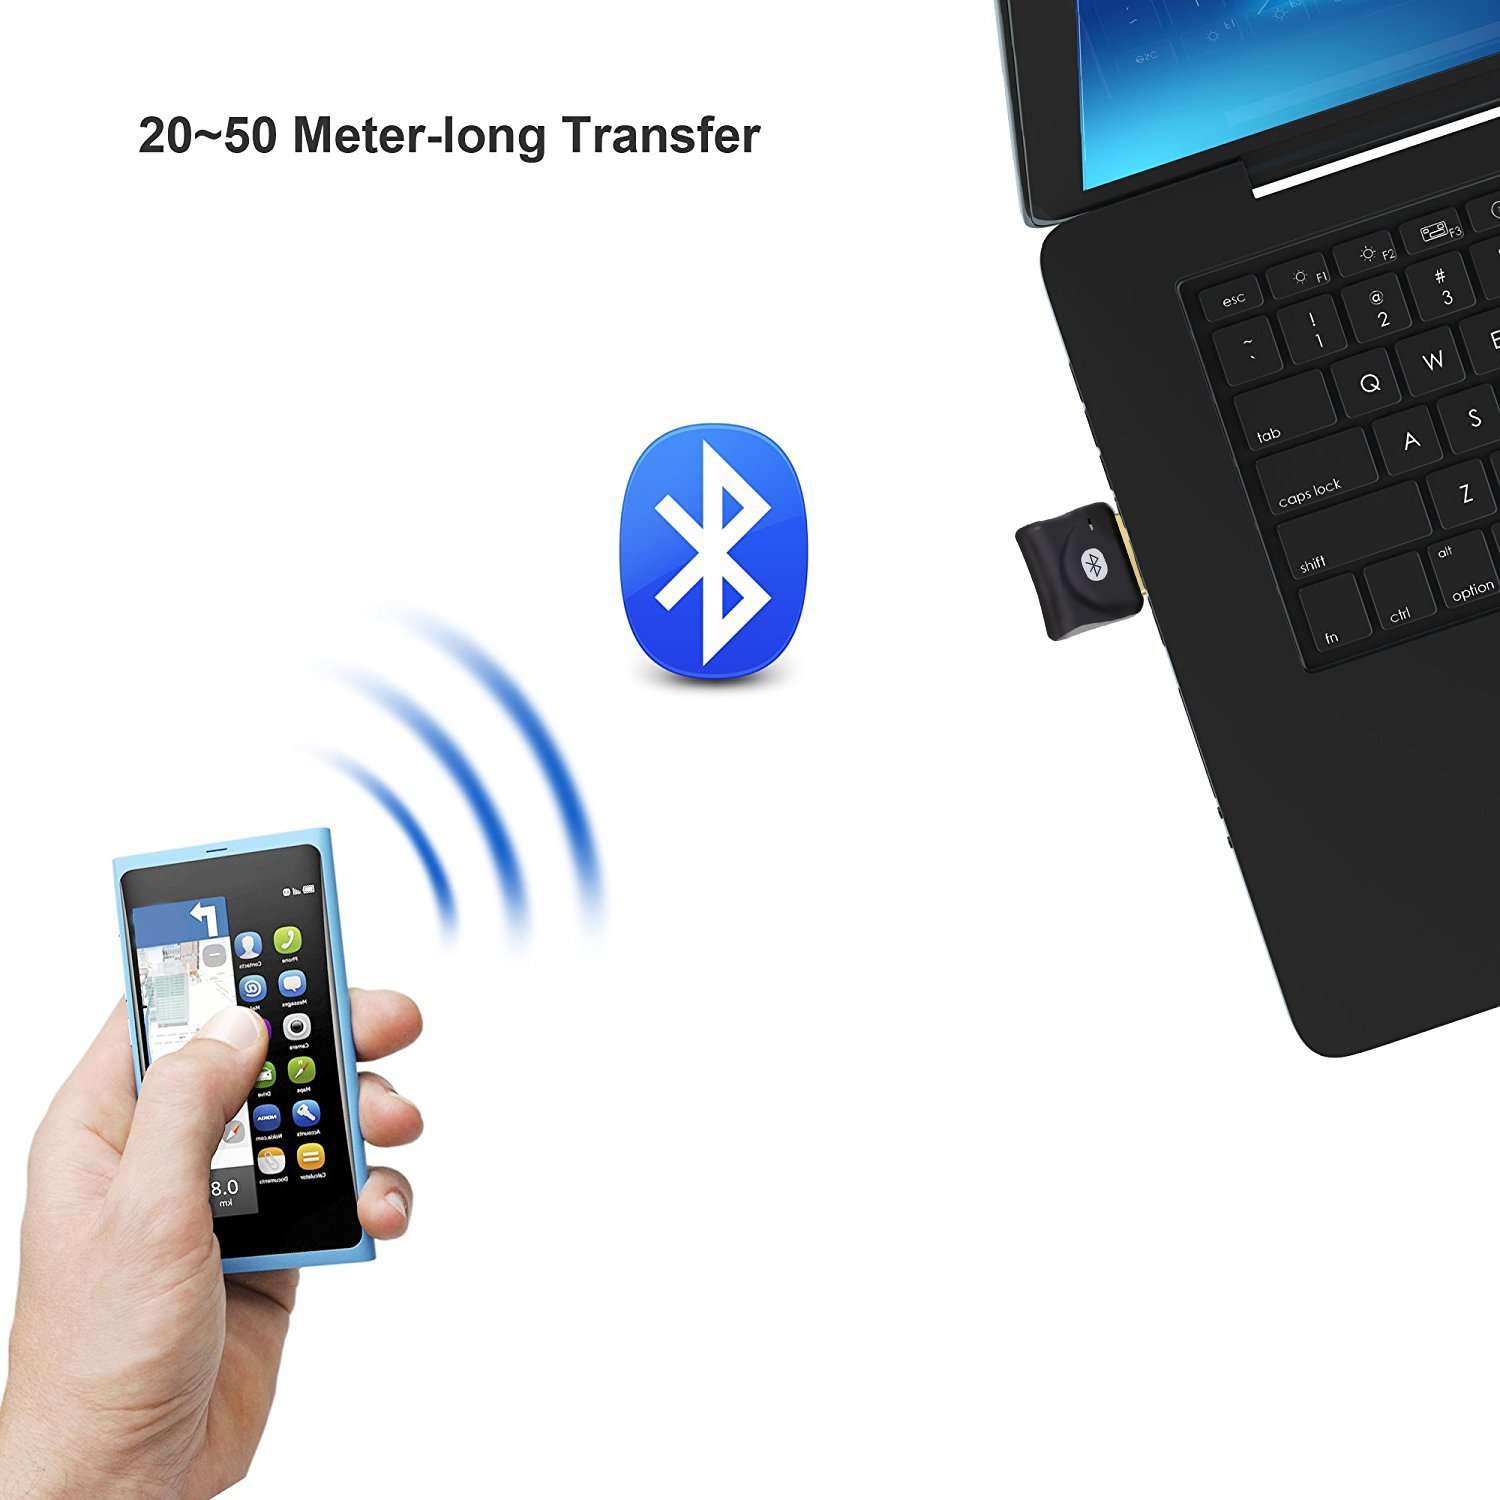 Bluetooth Adapter for PC USB Dongle ZTESY CSR 4.0 Bluetooth Receiver Wireless Transfer for Stereo Headphones Laptop Windows XP/7/8/10/Vista Compatible by ZTESY (Image #4)